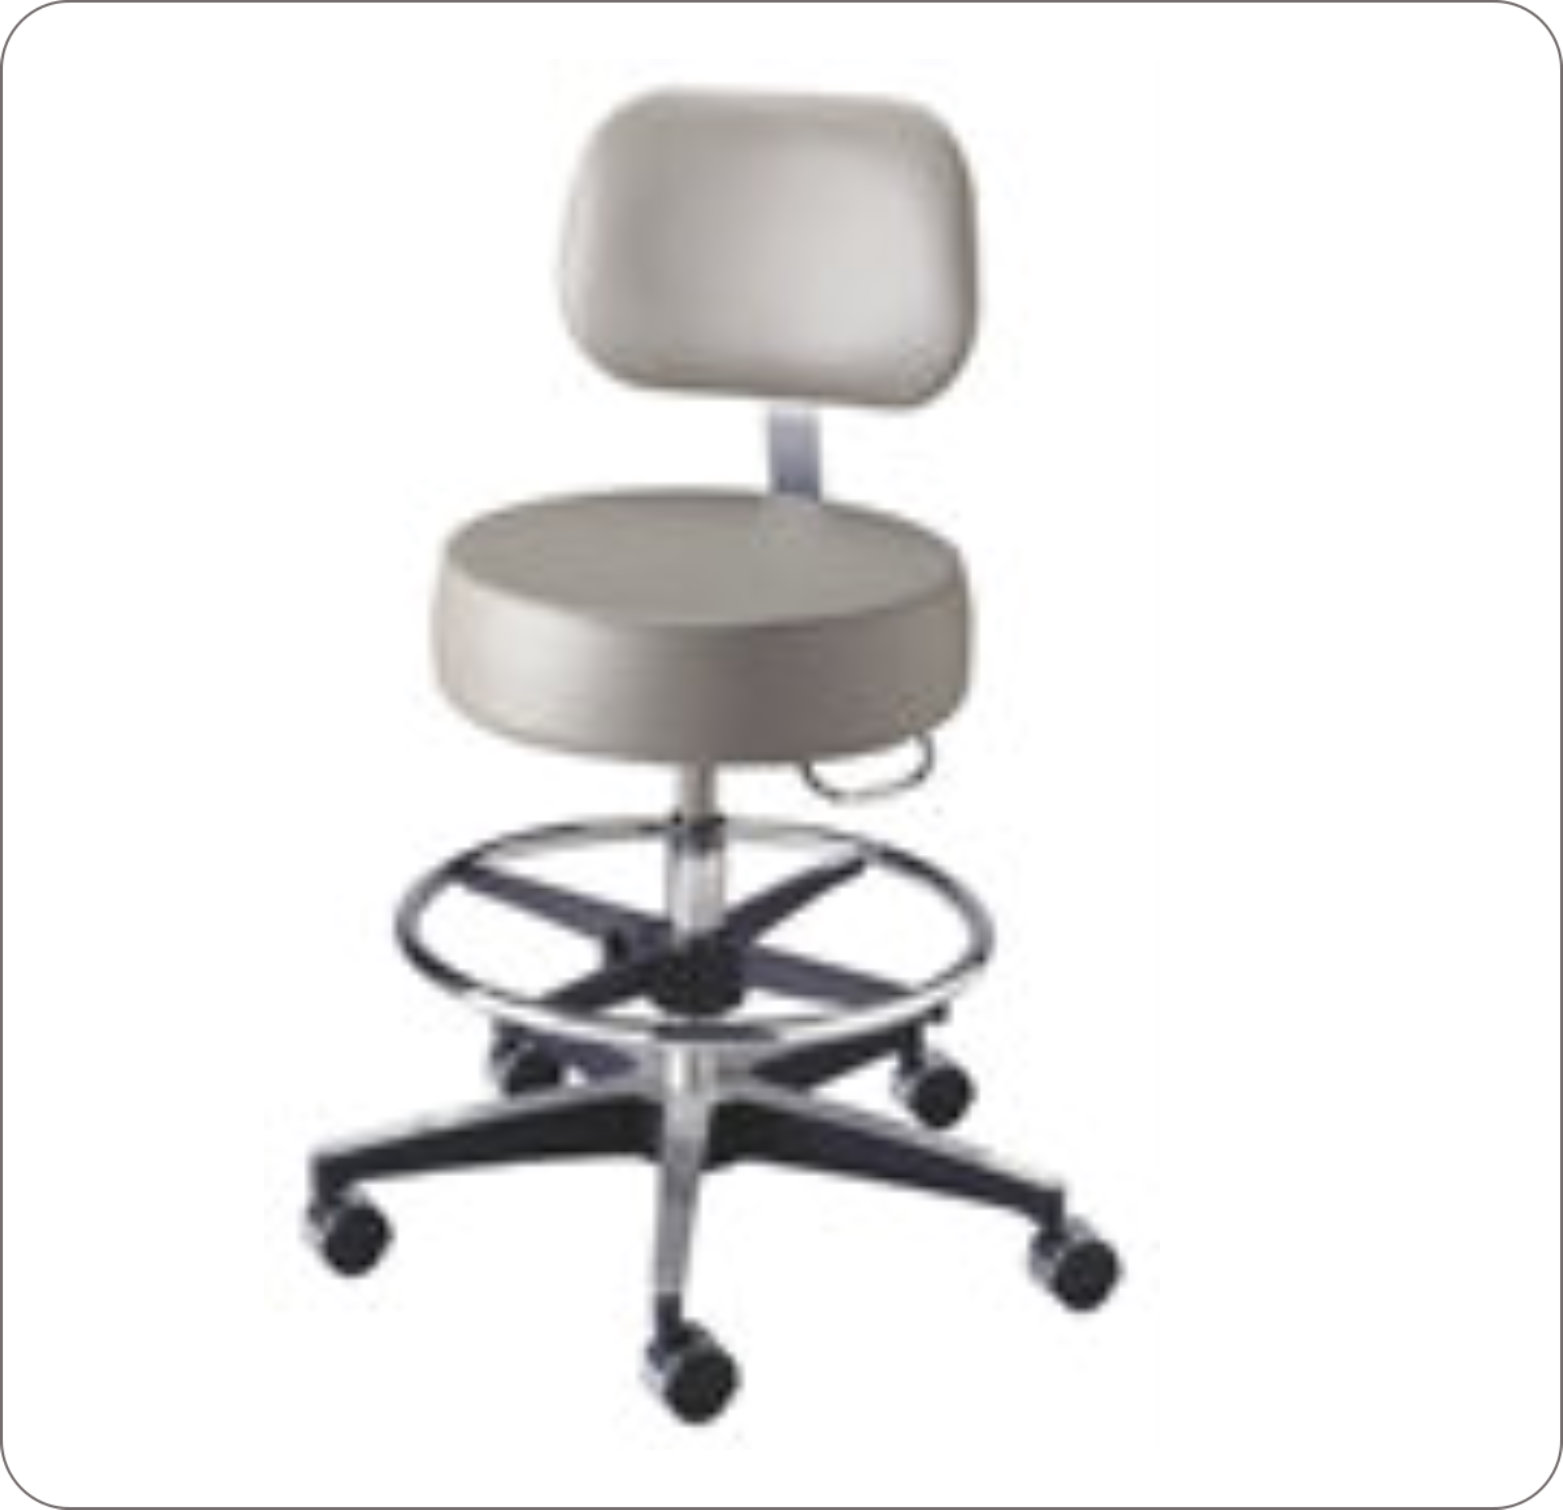 Stool Physician Air Lift W/Back & Foot Ring Black